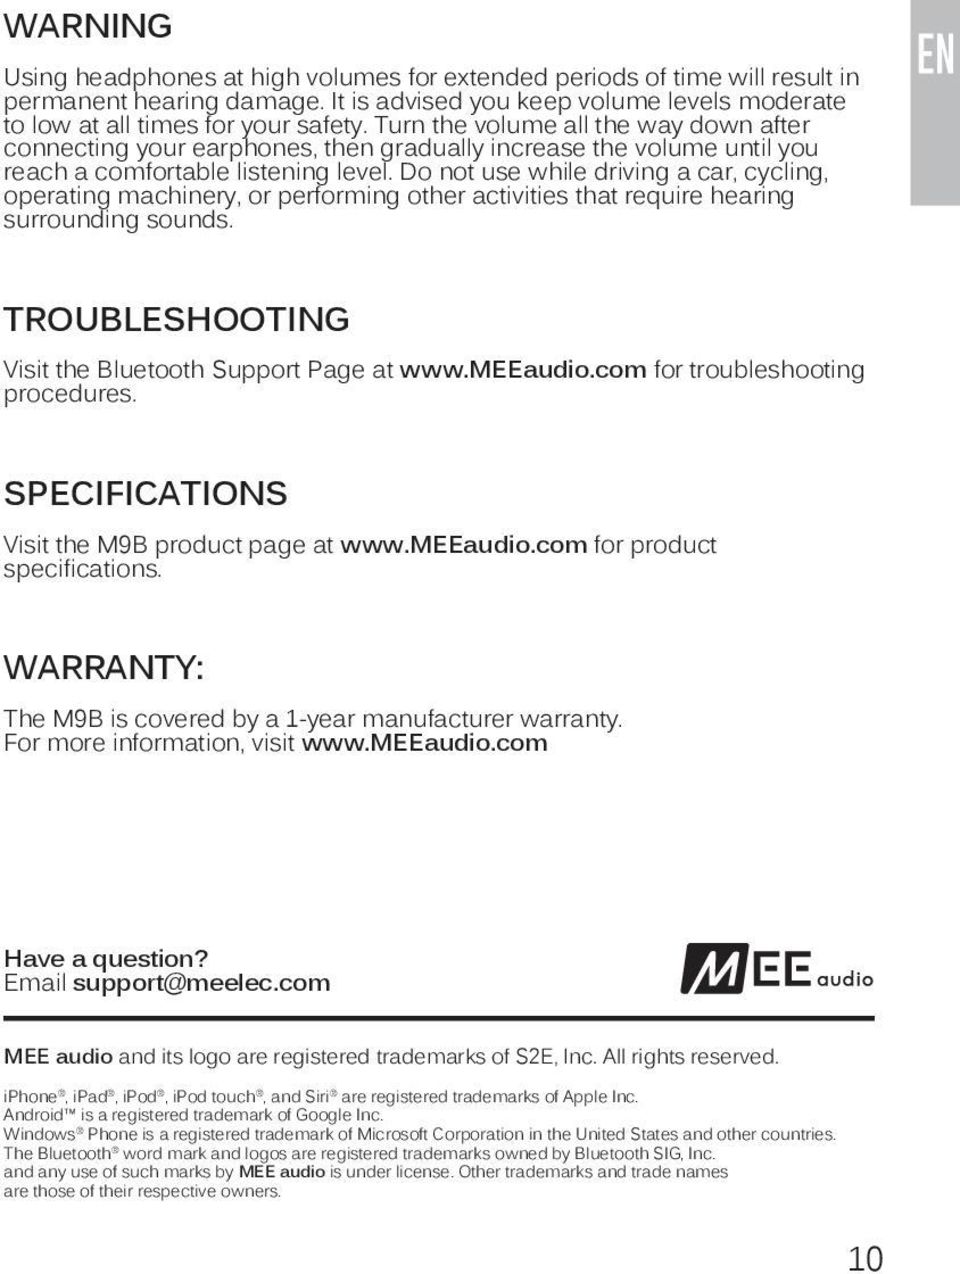 Do not use while driving a car, cycling, operating machinery, or performing other activities that require hearing surrounding sounds. TROUBLESHOOTING Visit the Bluetooth Support Page at www.meeaudio.